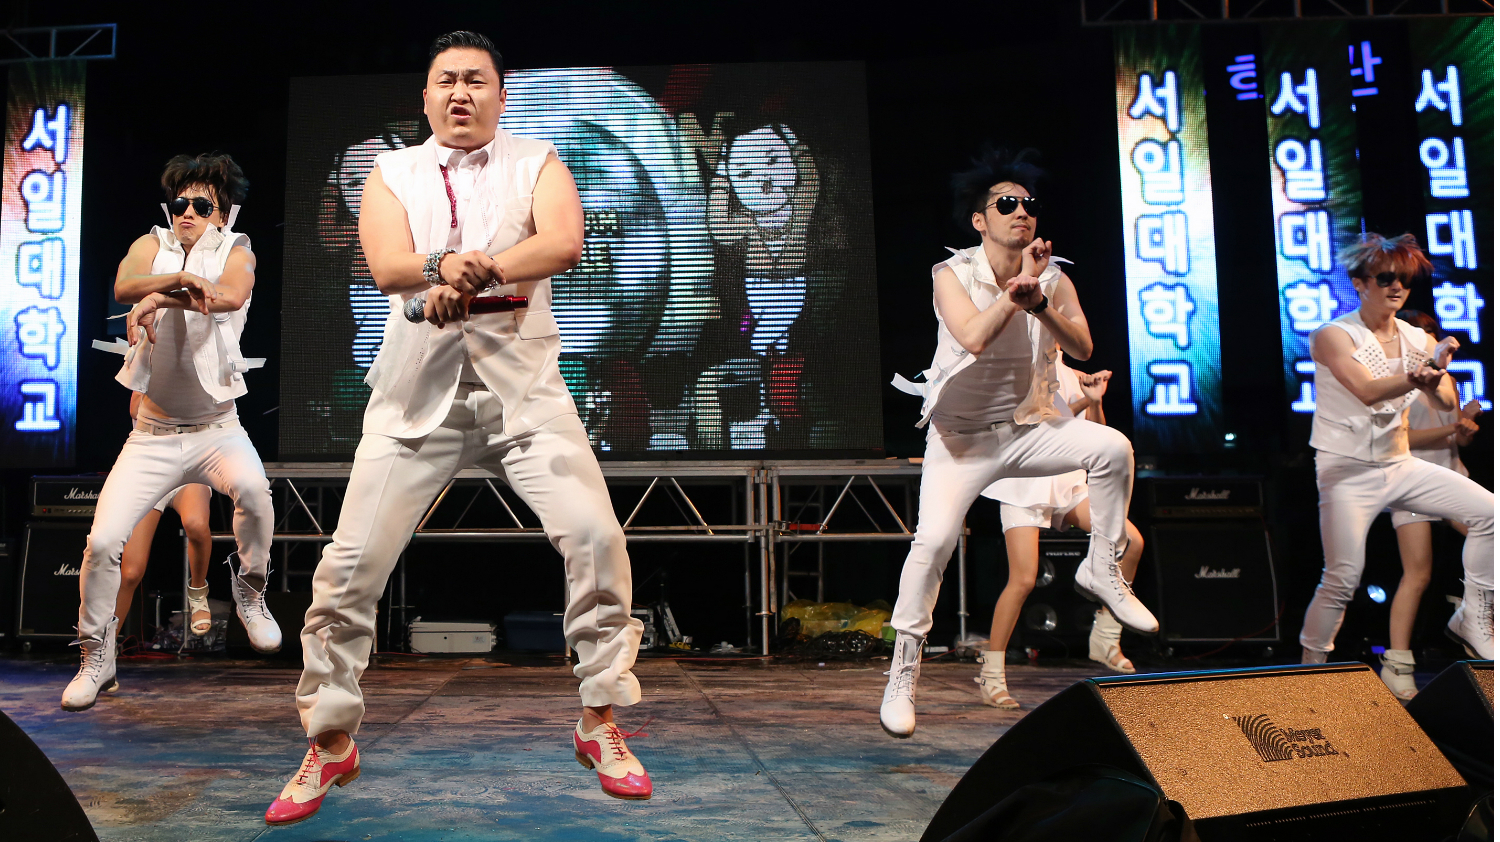 Psy concert K-pop Winter Olympics